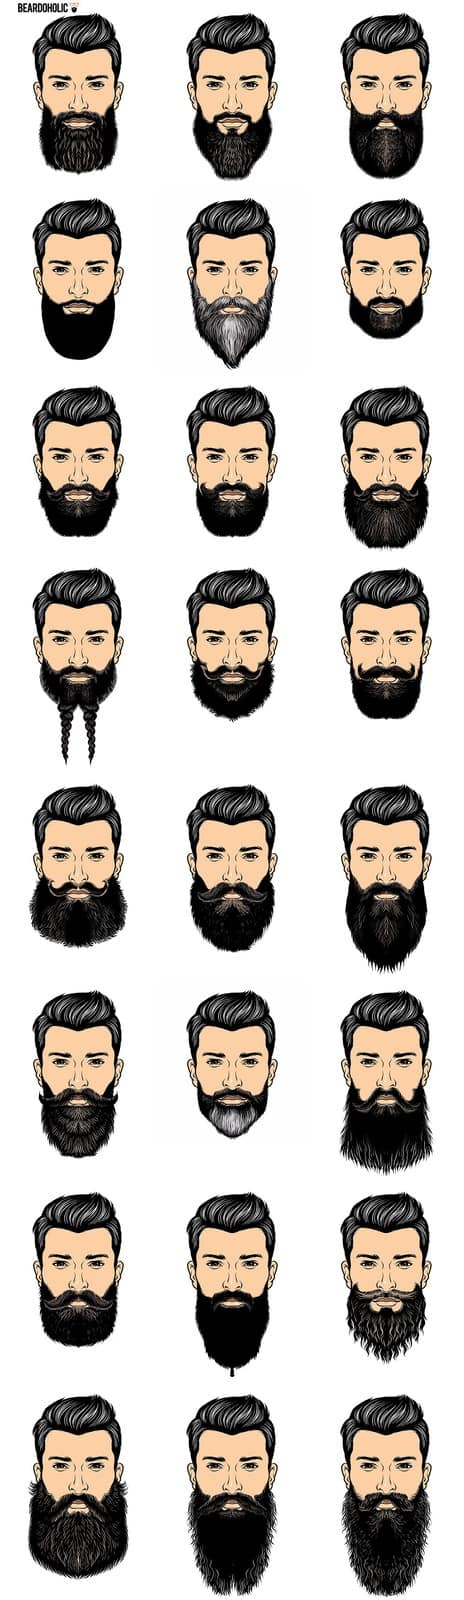 Mens haircut chart faisal abbas abbasfaisal on pinterest